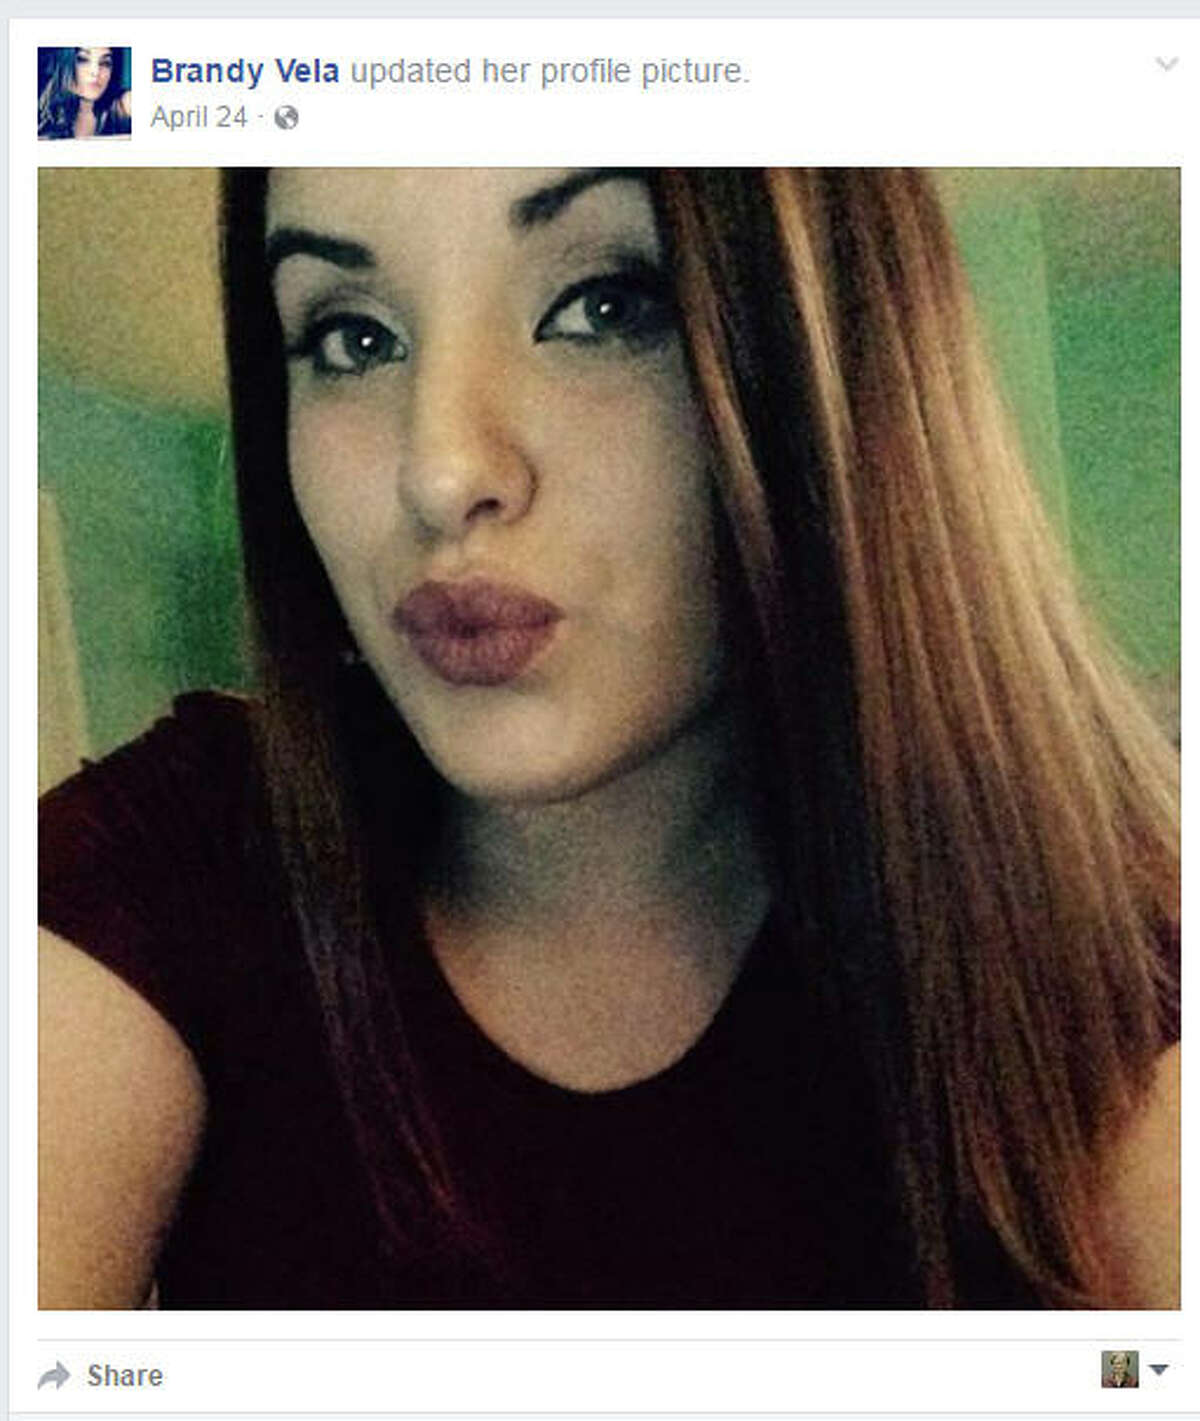 Brandy Vela, an 18-year-old Texas City High School senior, shot herself in the chest Nov. 29, 2016, at home in front of horrified family members who said she had endured relentless cyberbullying.(Facebook/Brandy Vela)